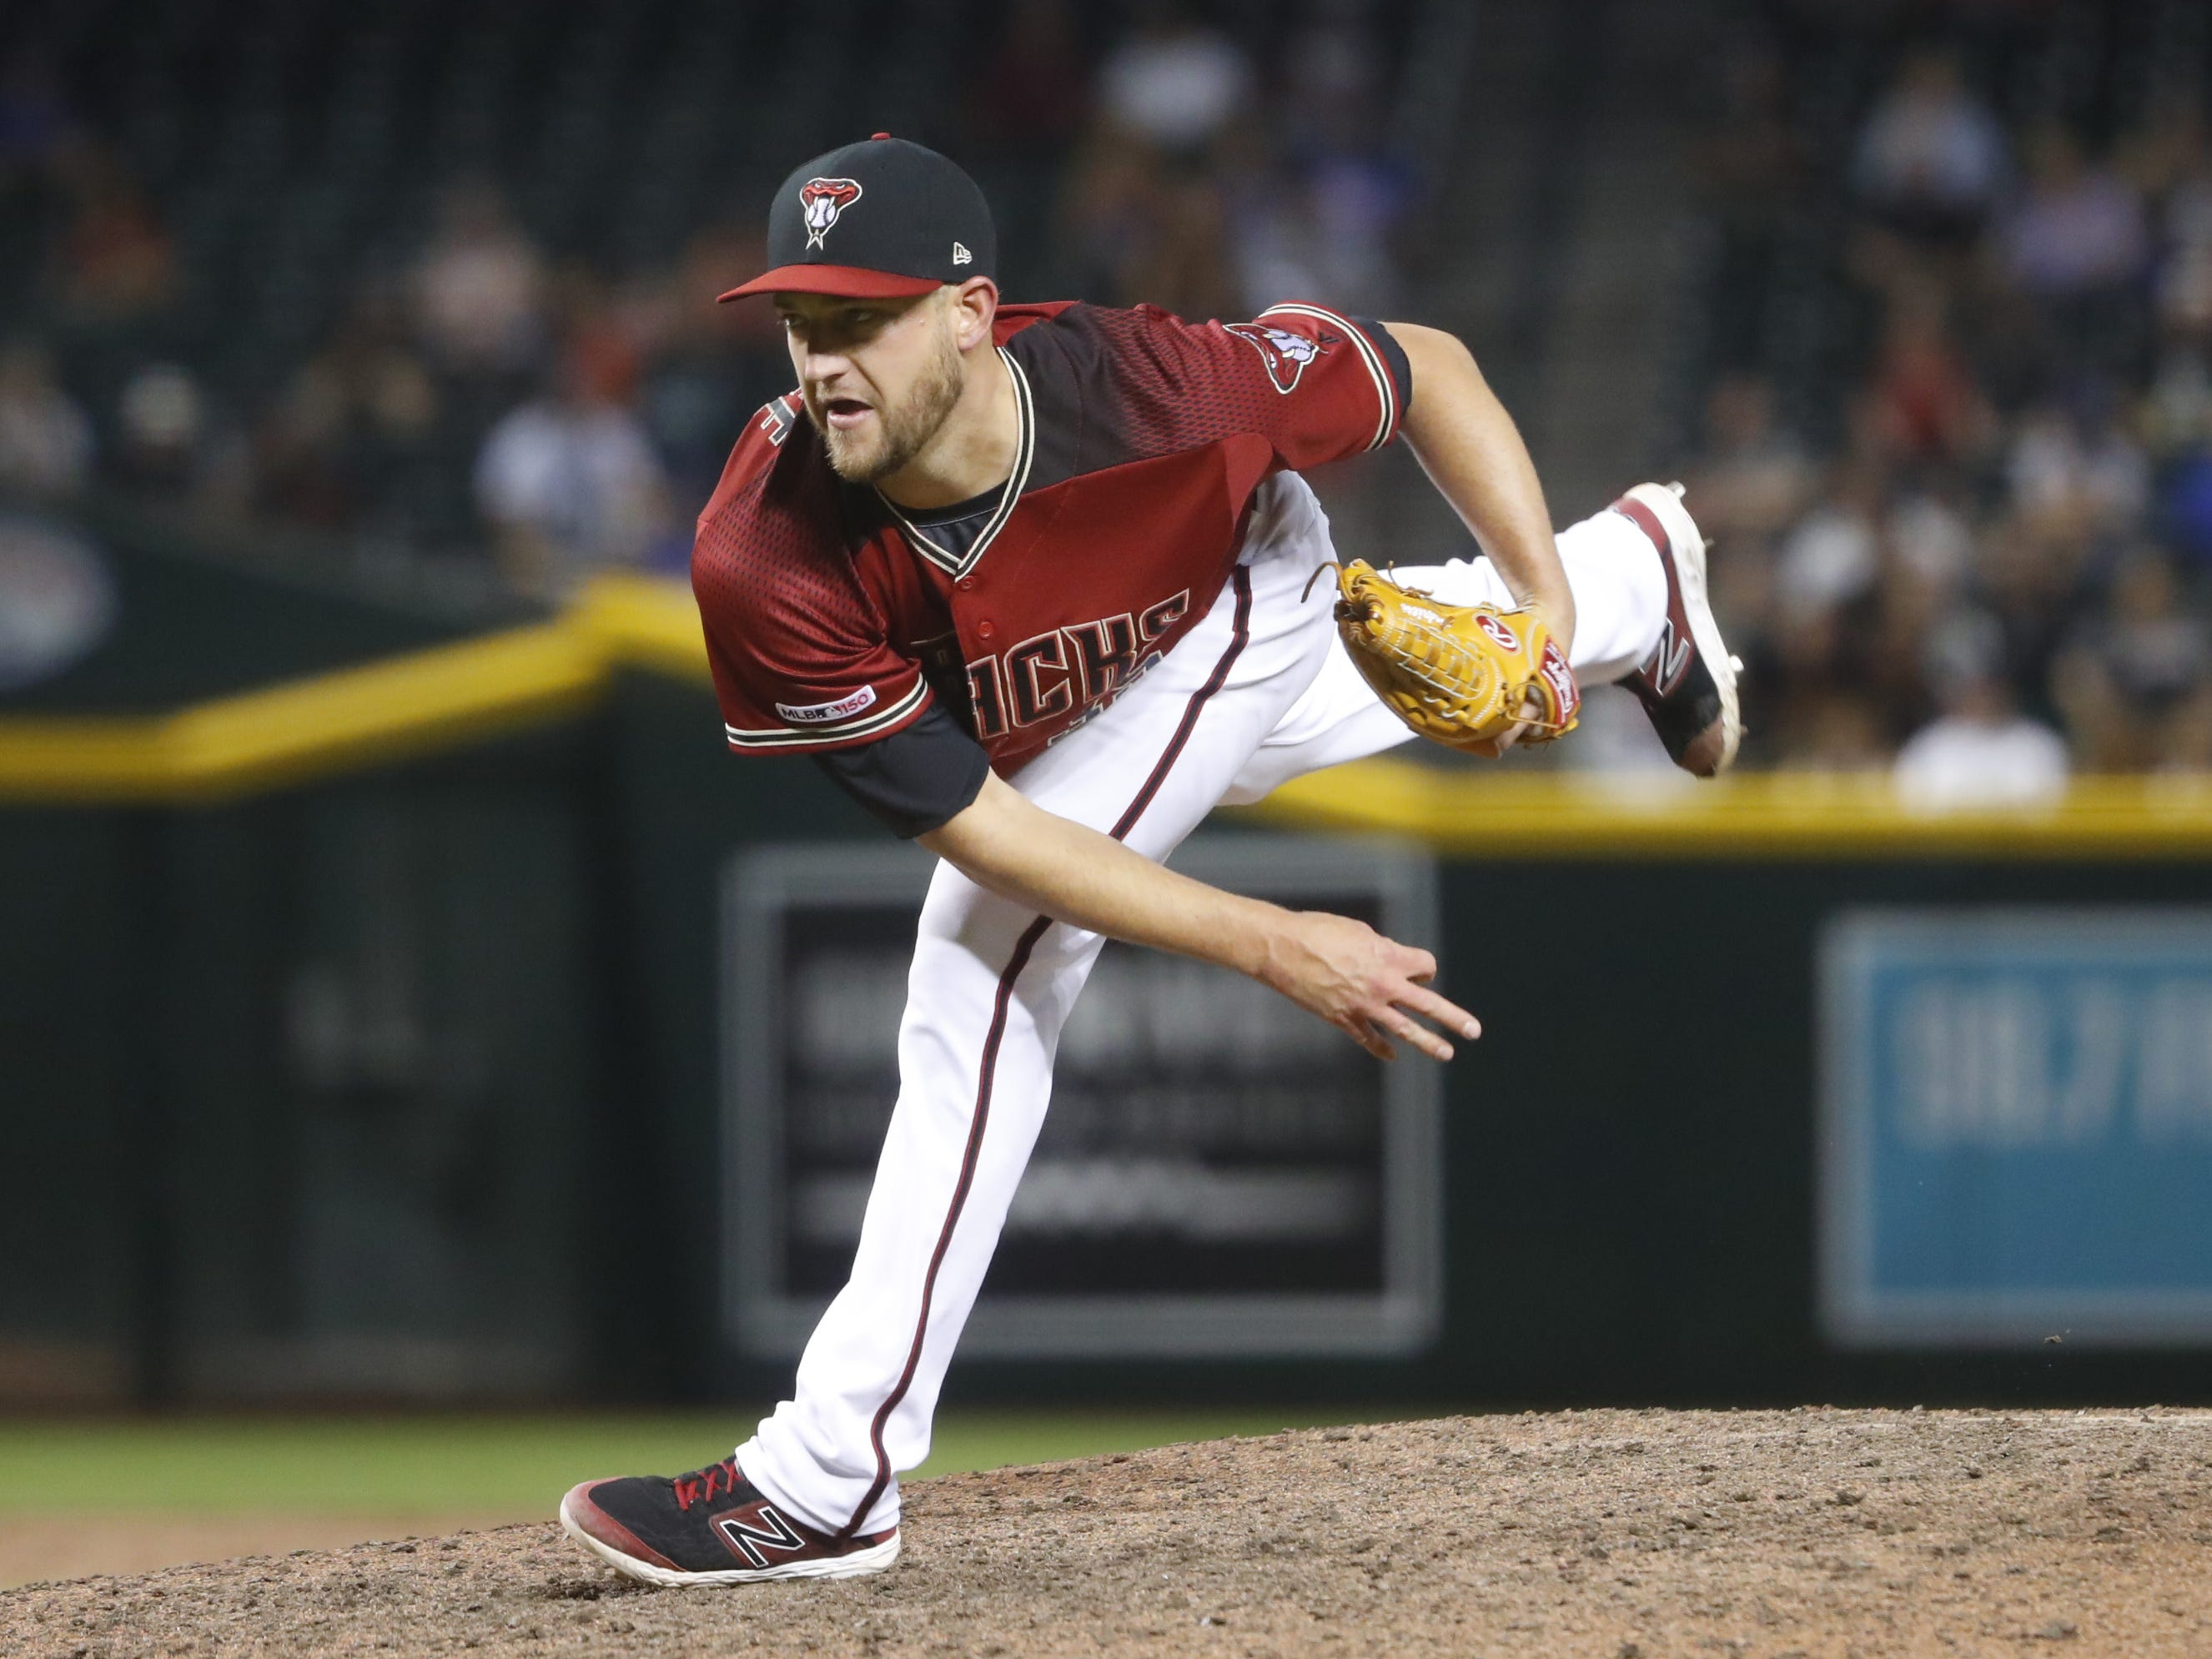 Diamondbacks' Matt Andriese pitches against the Cubs during the 15th inning at Chase Field in Phoenix, Ariz. on April 28, 2019.